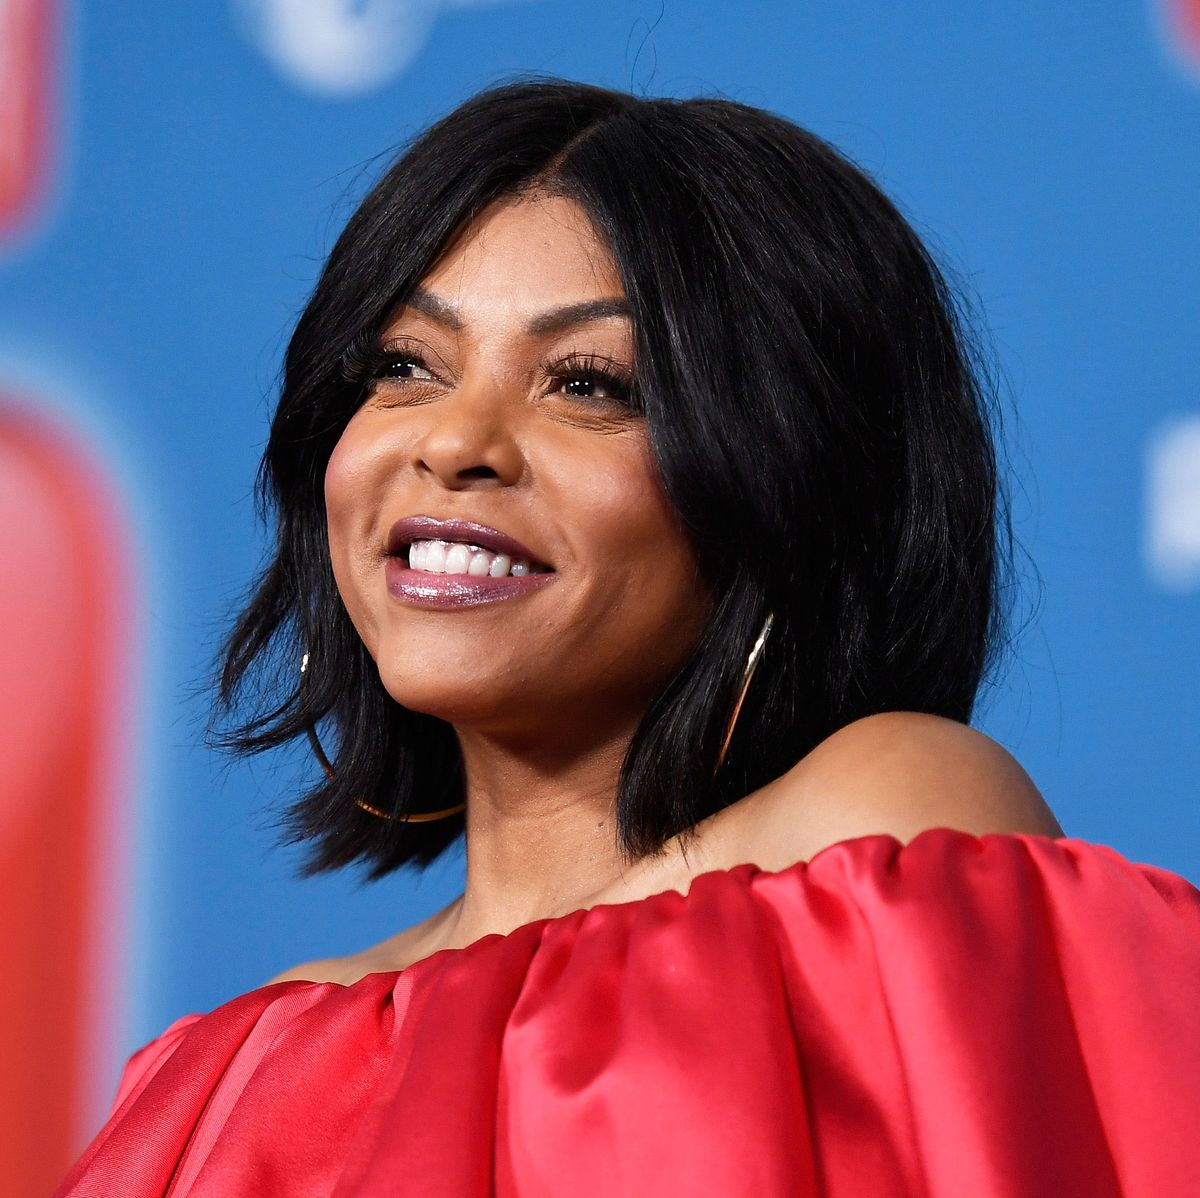 Taraji P Henson Just Launched A Hair Care Line Called Tph